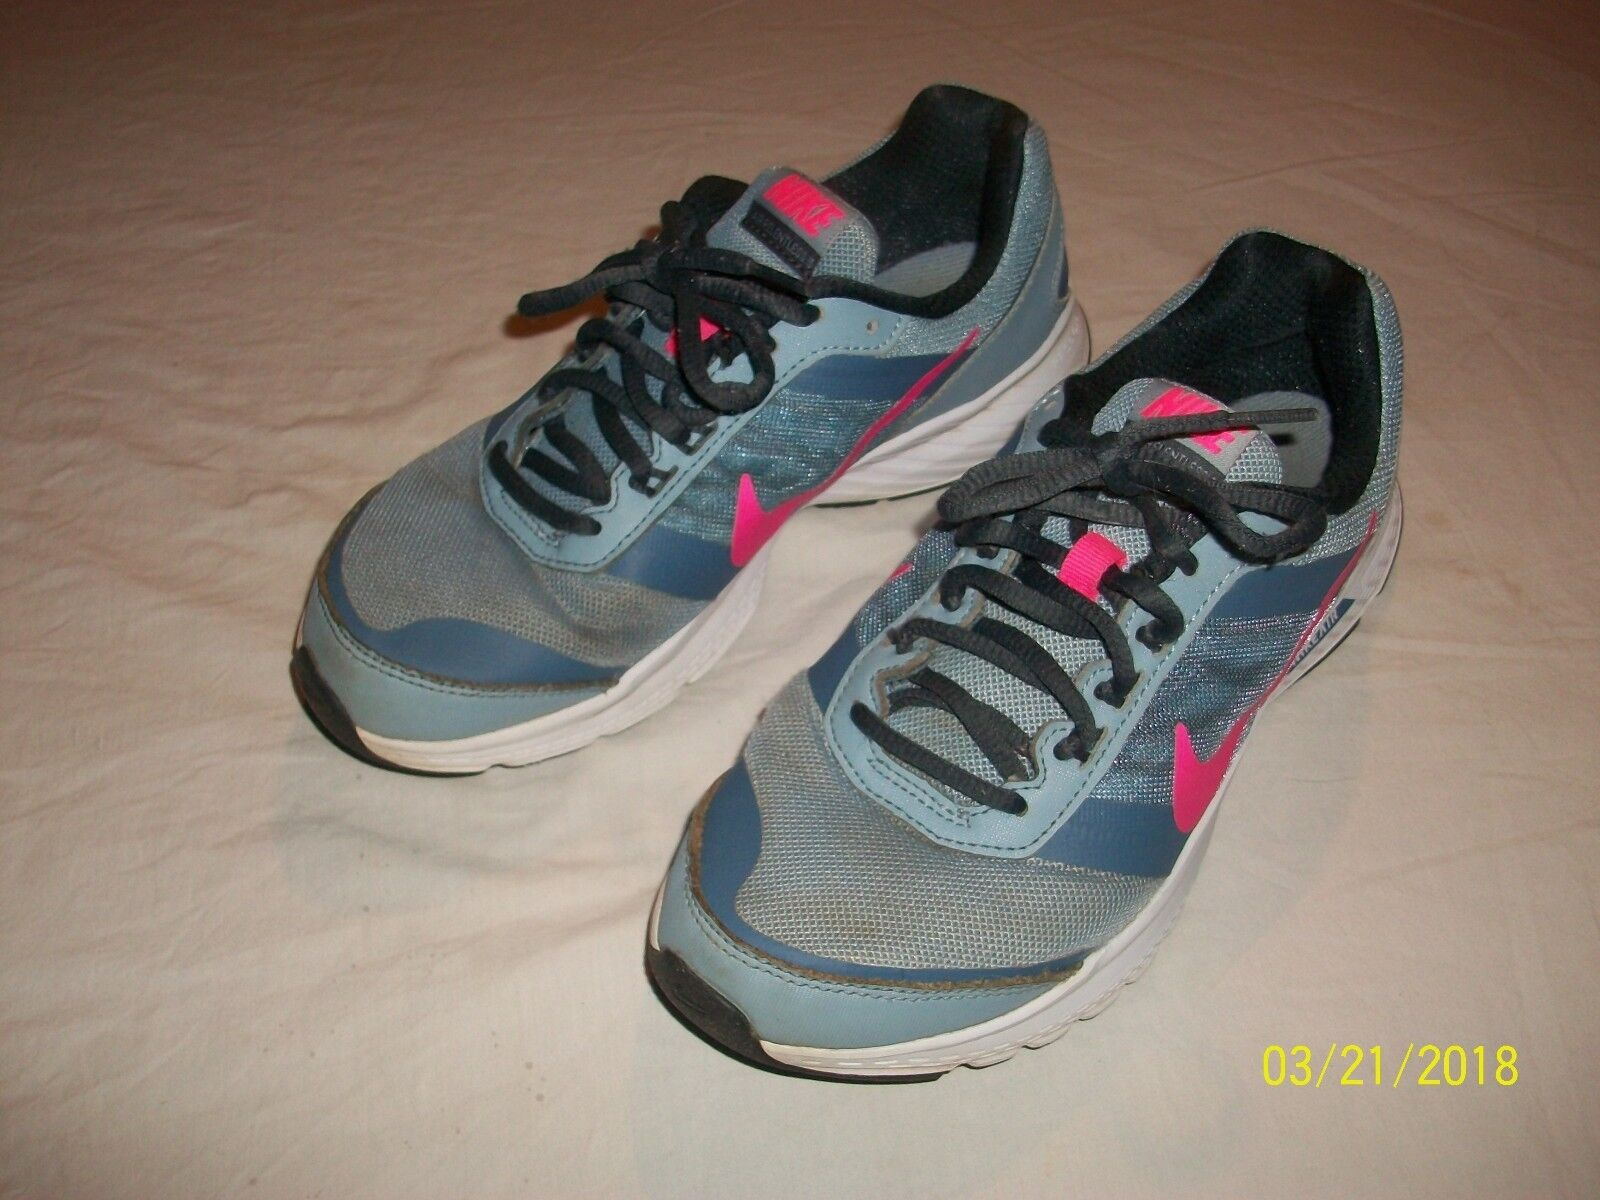 Nike Air Shoes Relentless 5 Women's Athletic Shoes Air 807098-401 Size 8.5 eebaa8